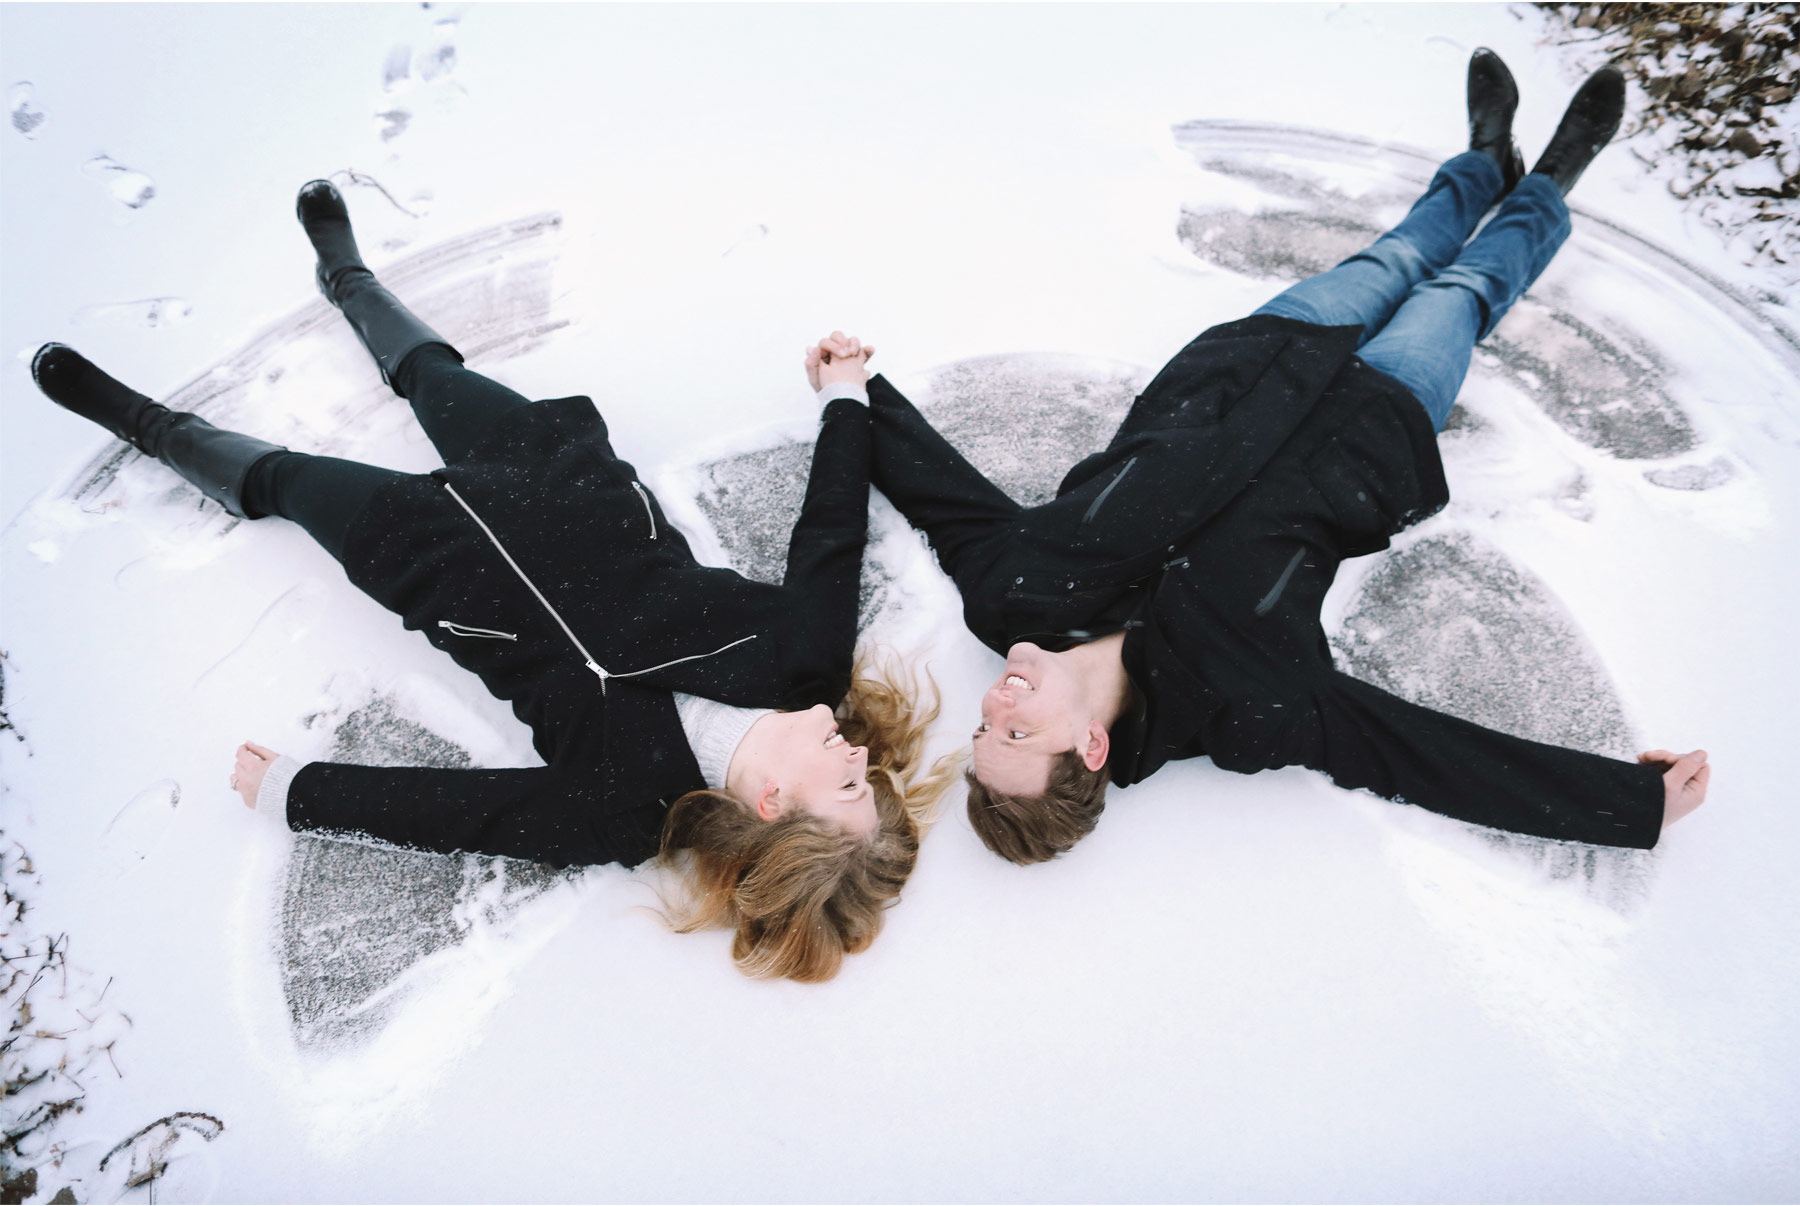 05-Vick-Photography-Engagement-Session-Winter-Outdoor-Couple-Snow-Angles-Frozen-Lake-Veronica-and-Tyler.jpg